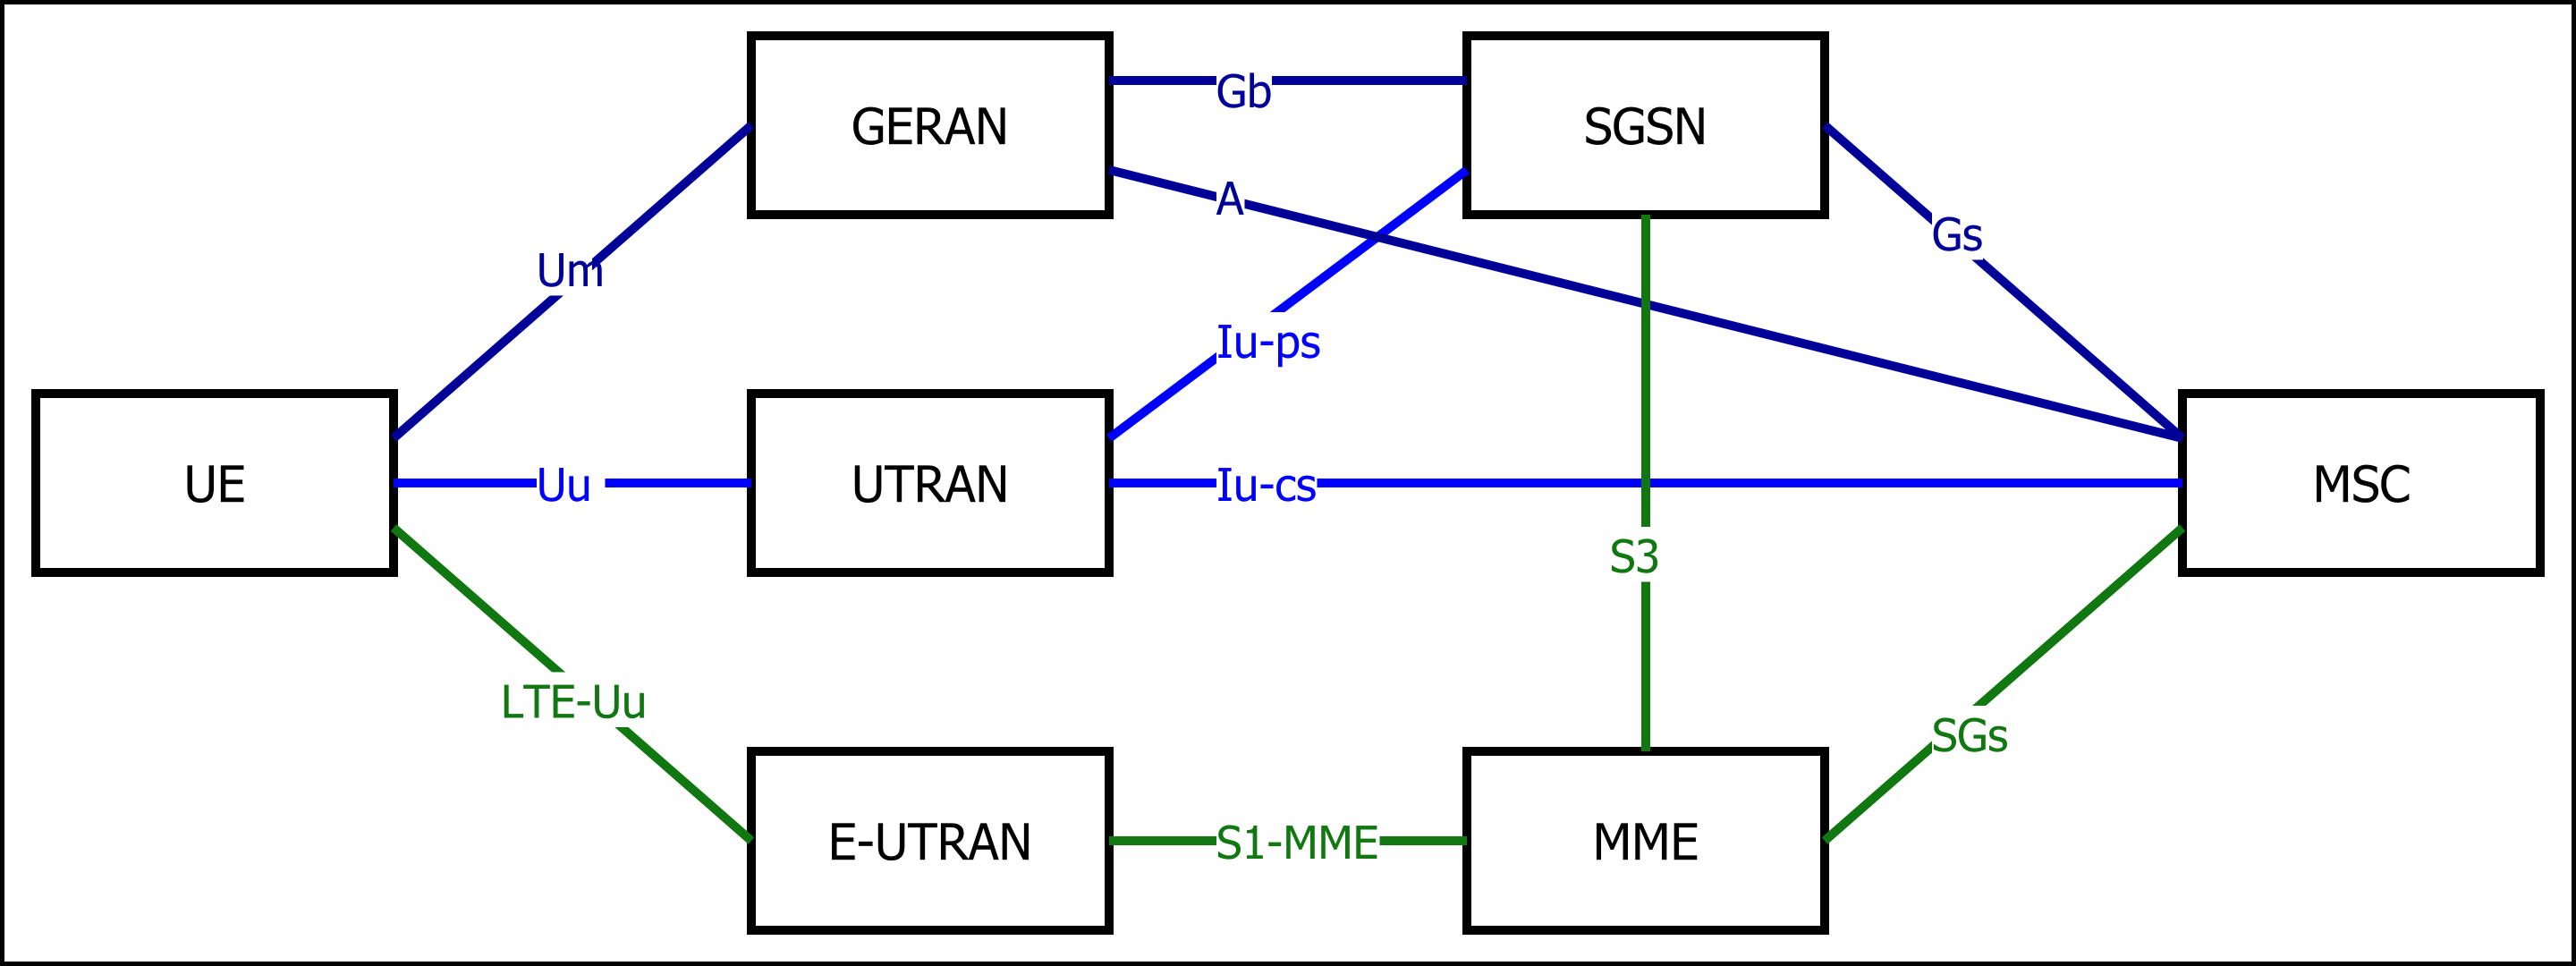 Difference Between NB-IoT and LTE-M